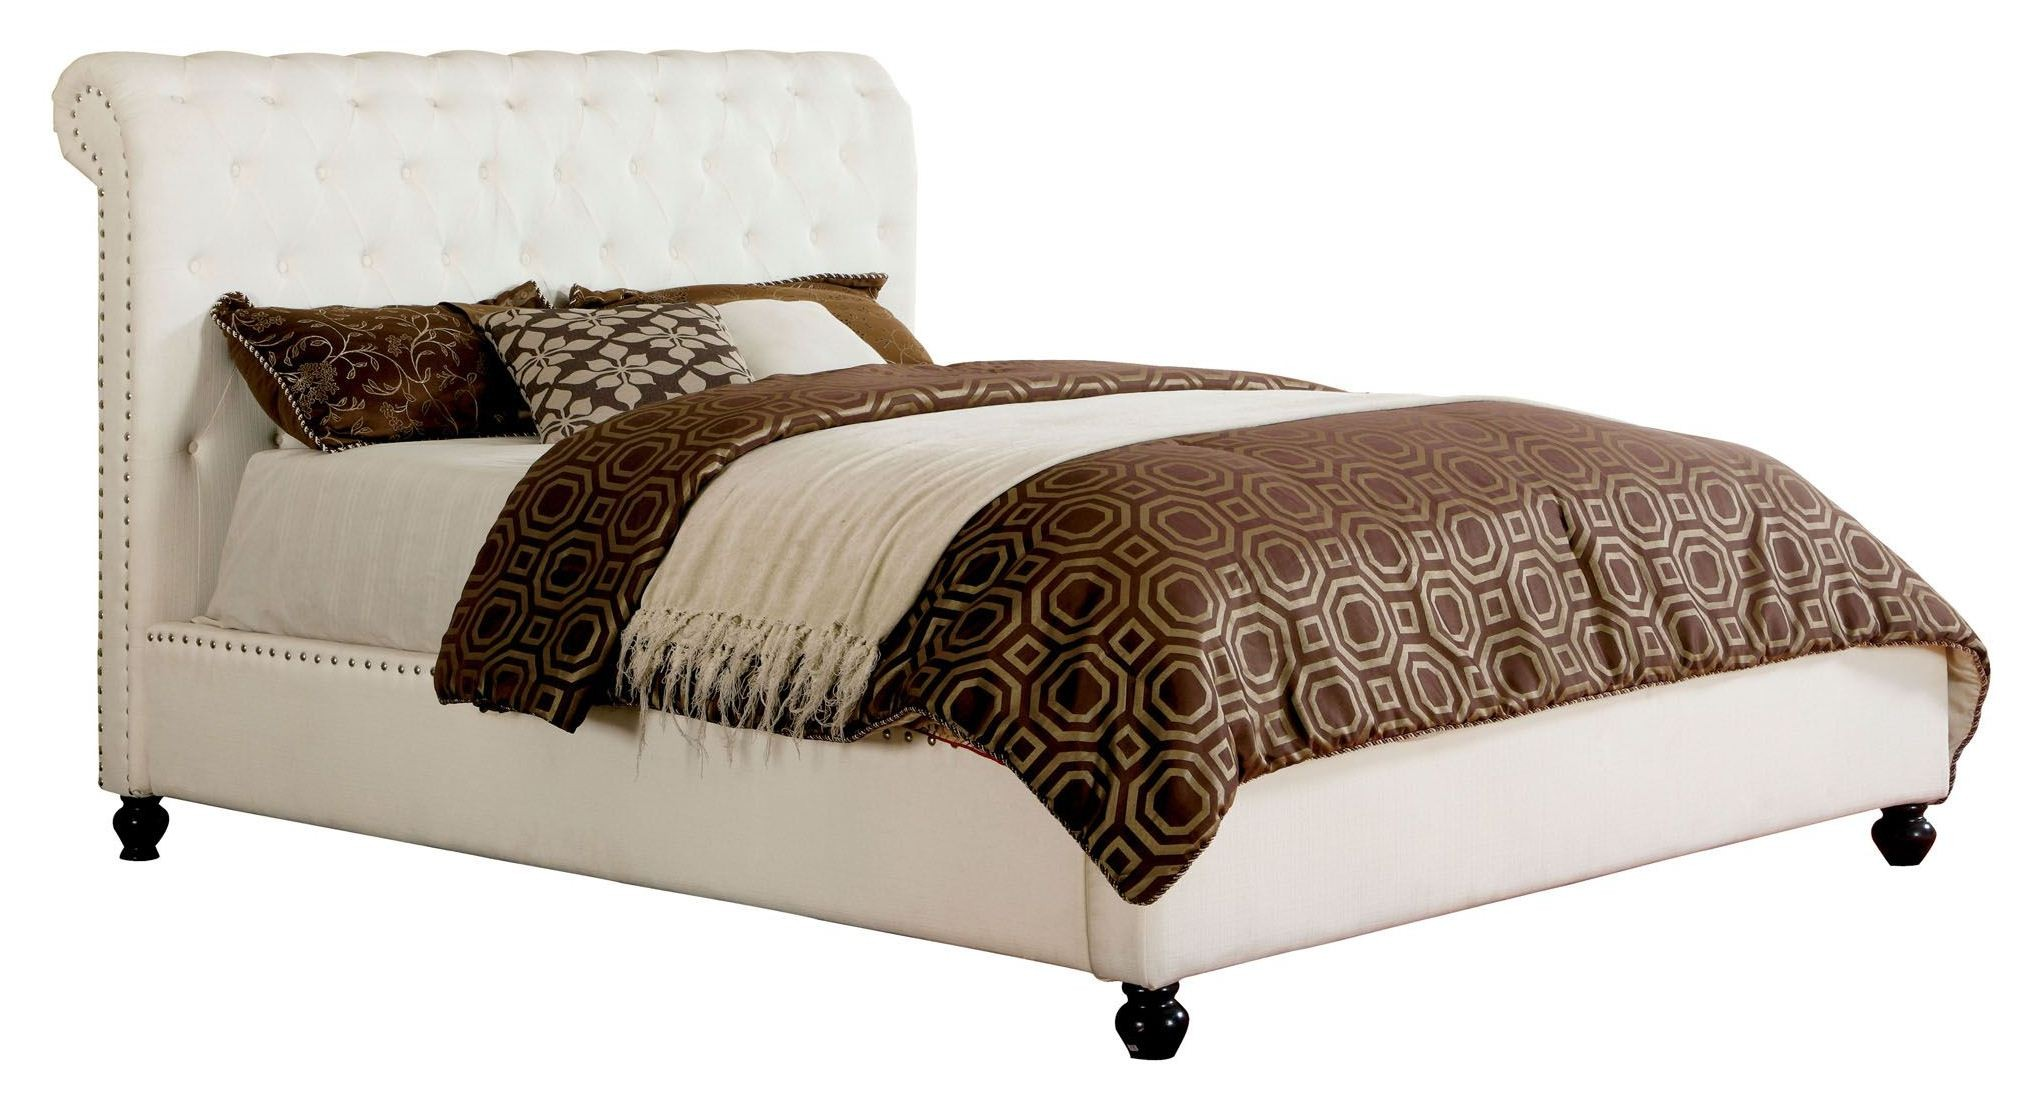 Bennett White Queen Platform Bed From Furniture Of America